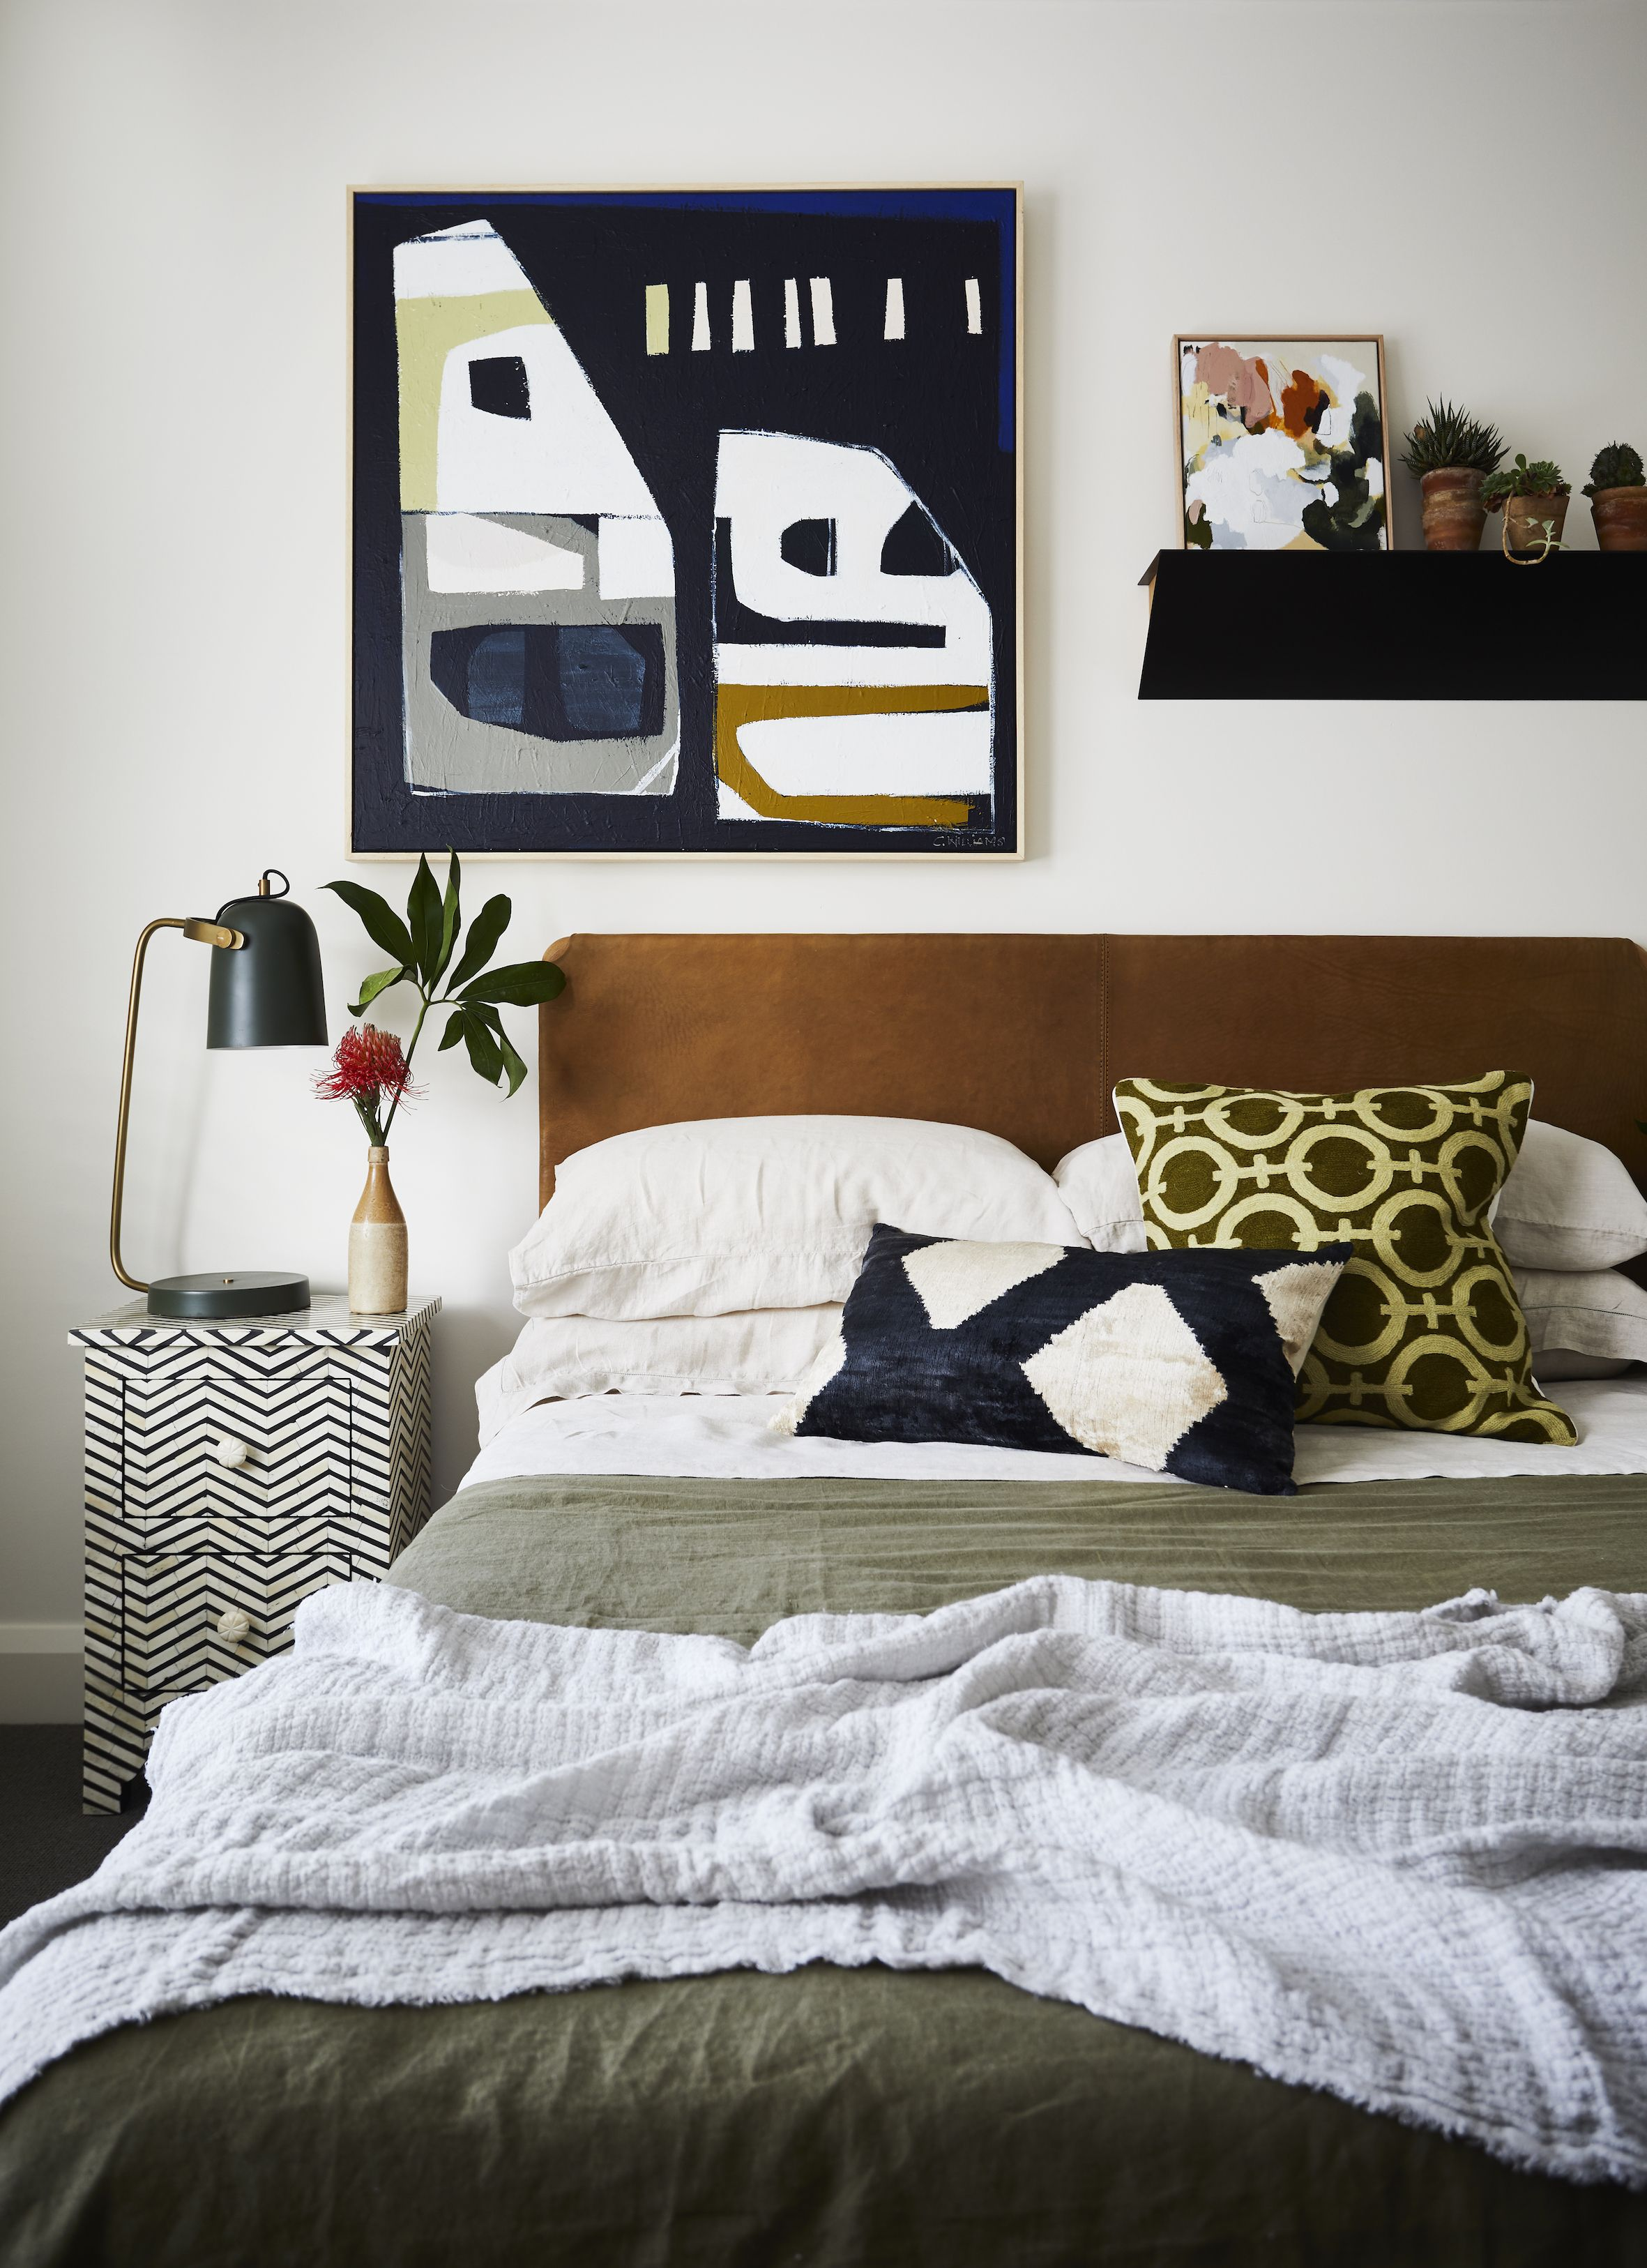 Bedroom Creator Online: Claremont House MIX TO THE MAX